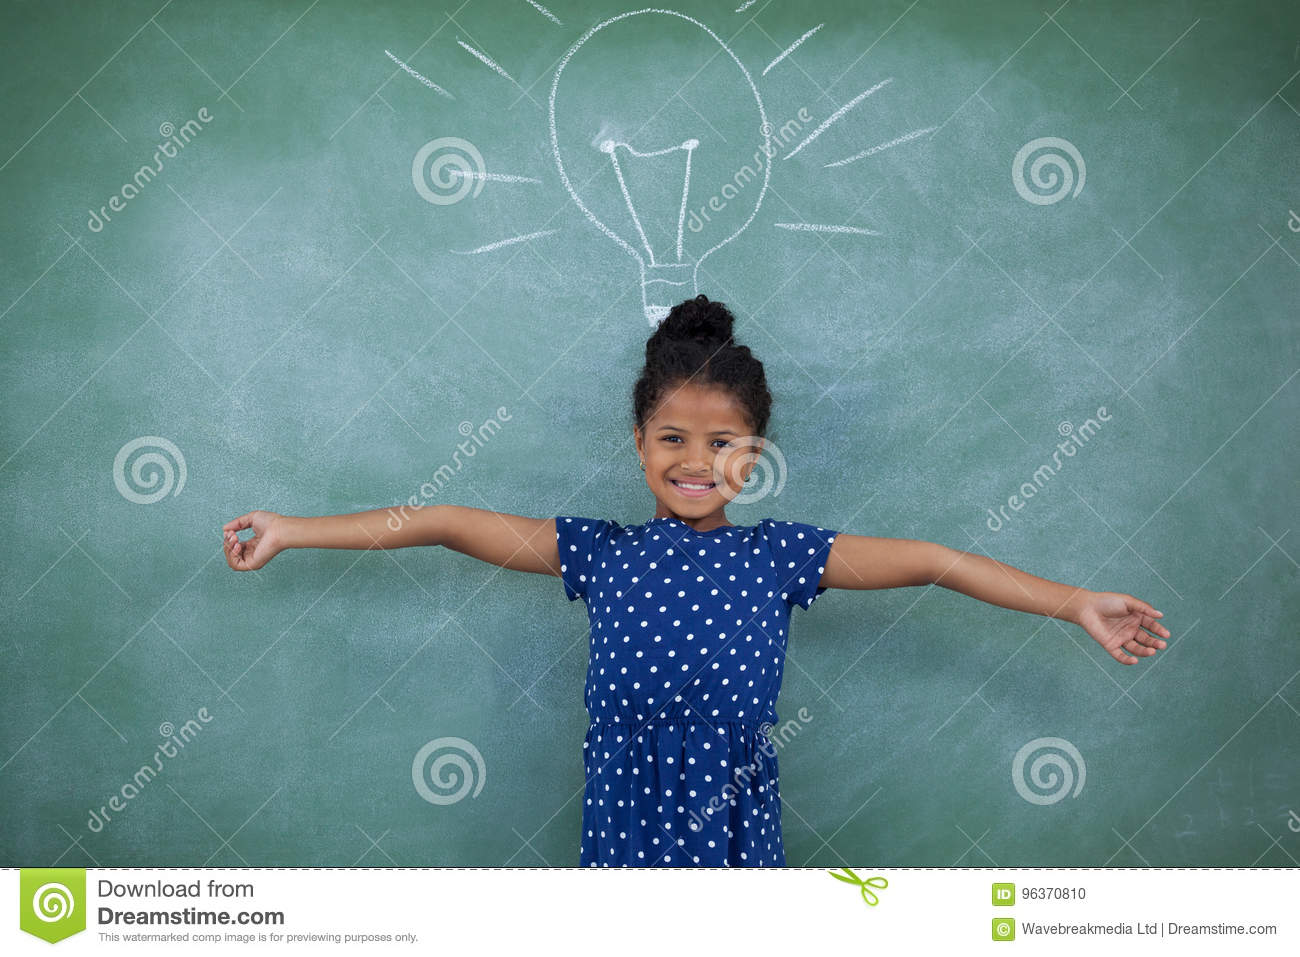 Portrait of girl with arms outstretched by bulb drawing on wall